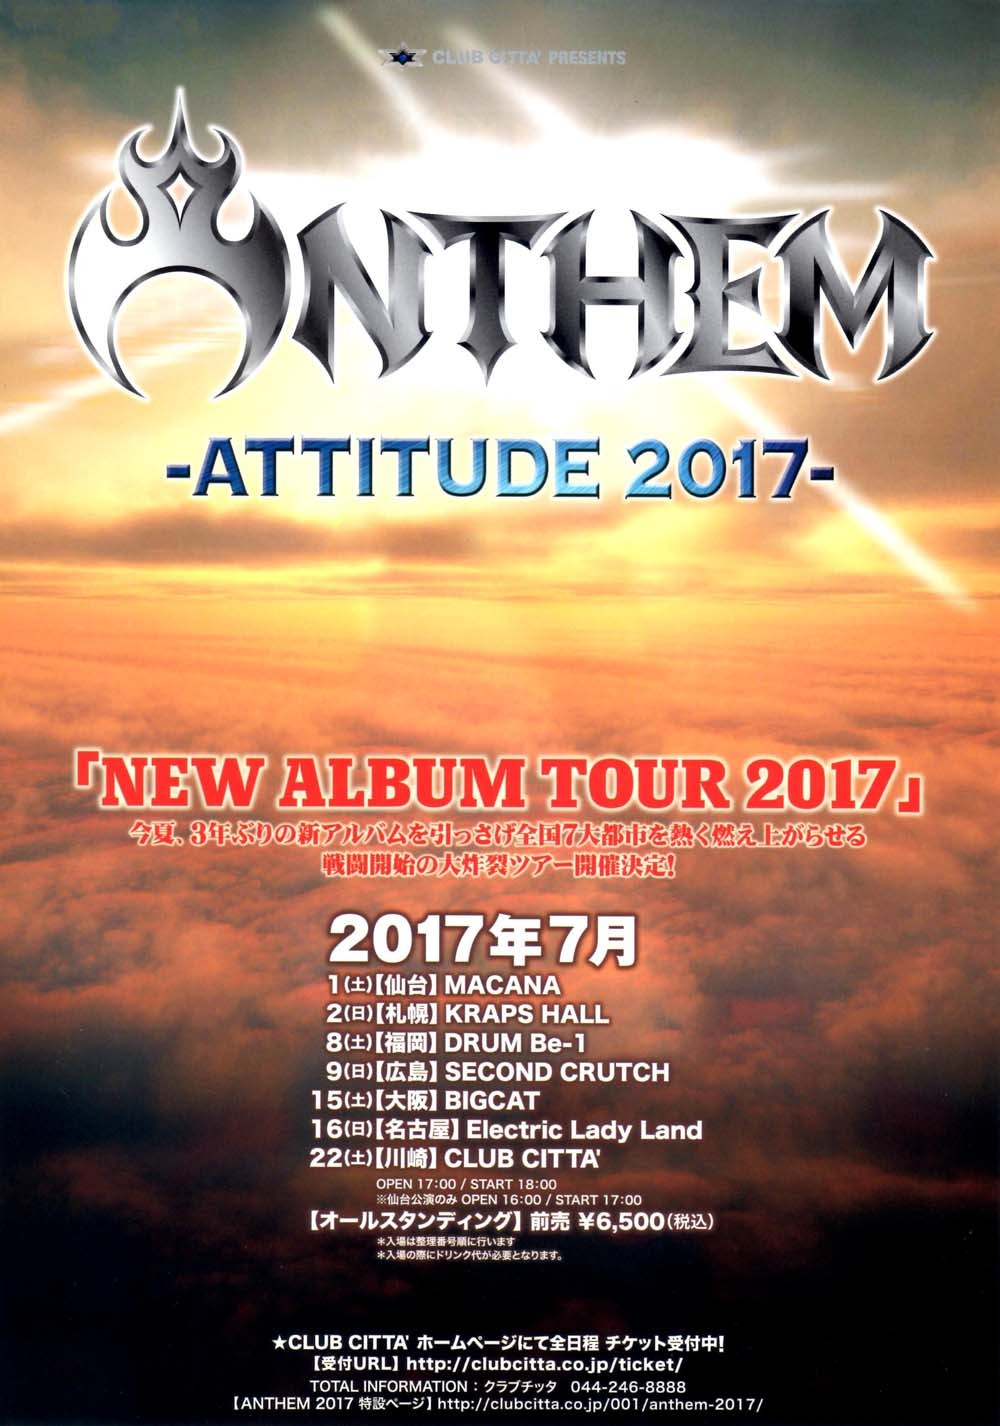 anthem-attitude_2017_new_album_tour_2017_flyer1.jpg